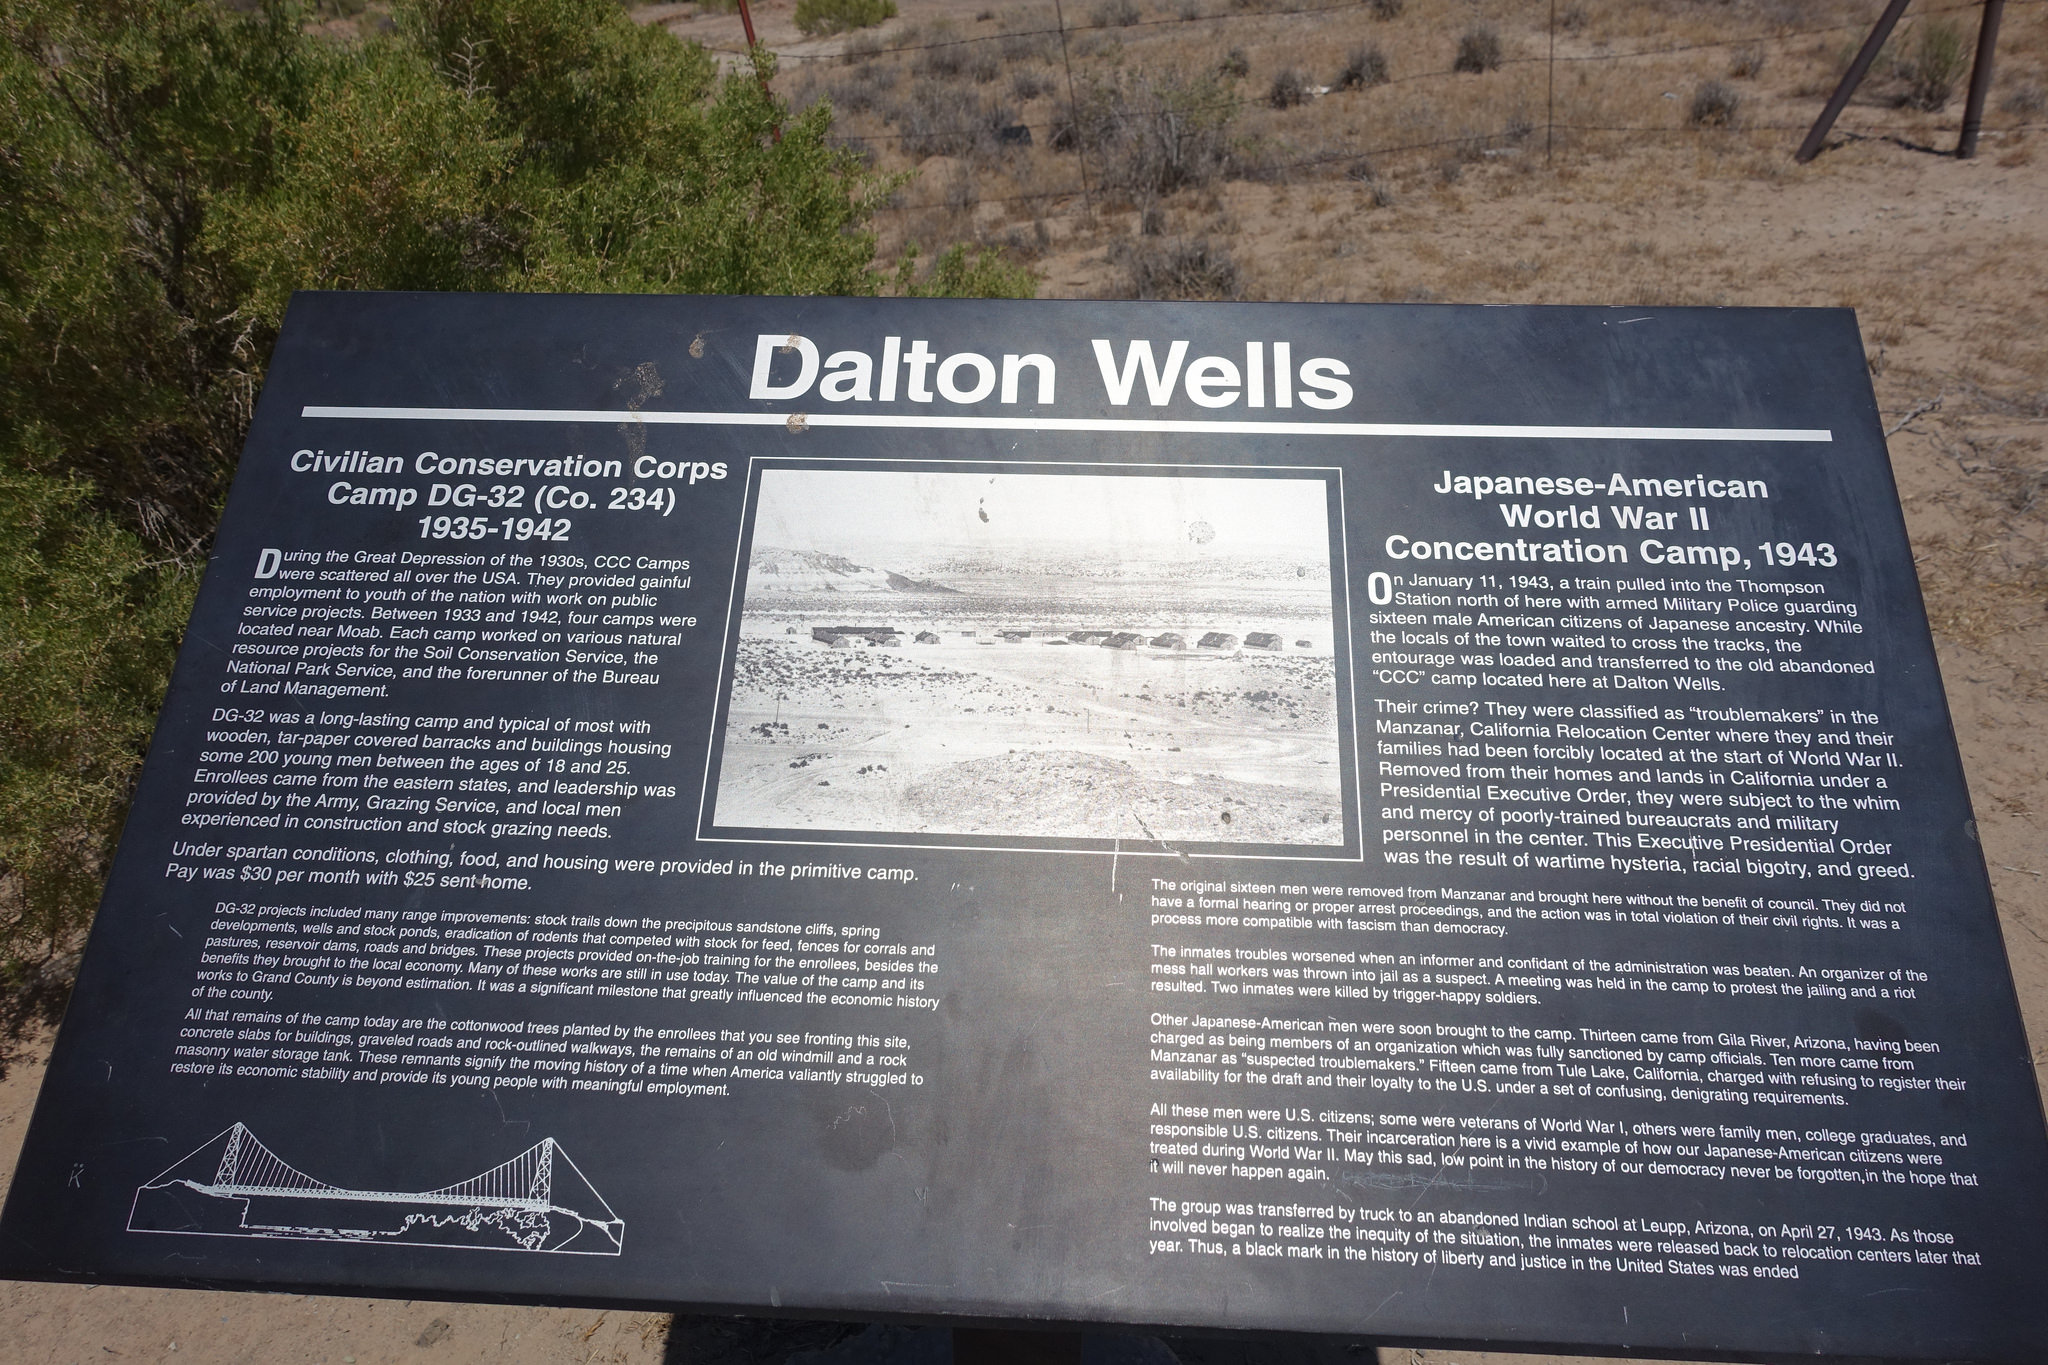 Plaque at Dalton Wells site